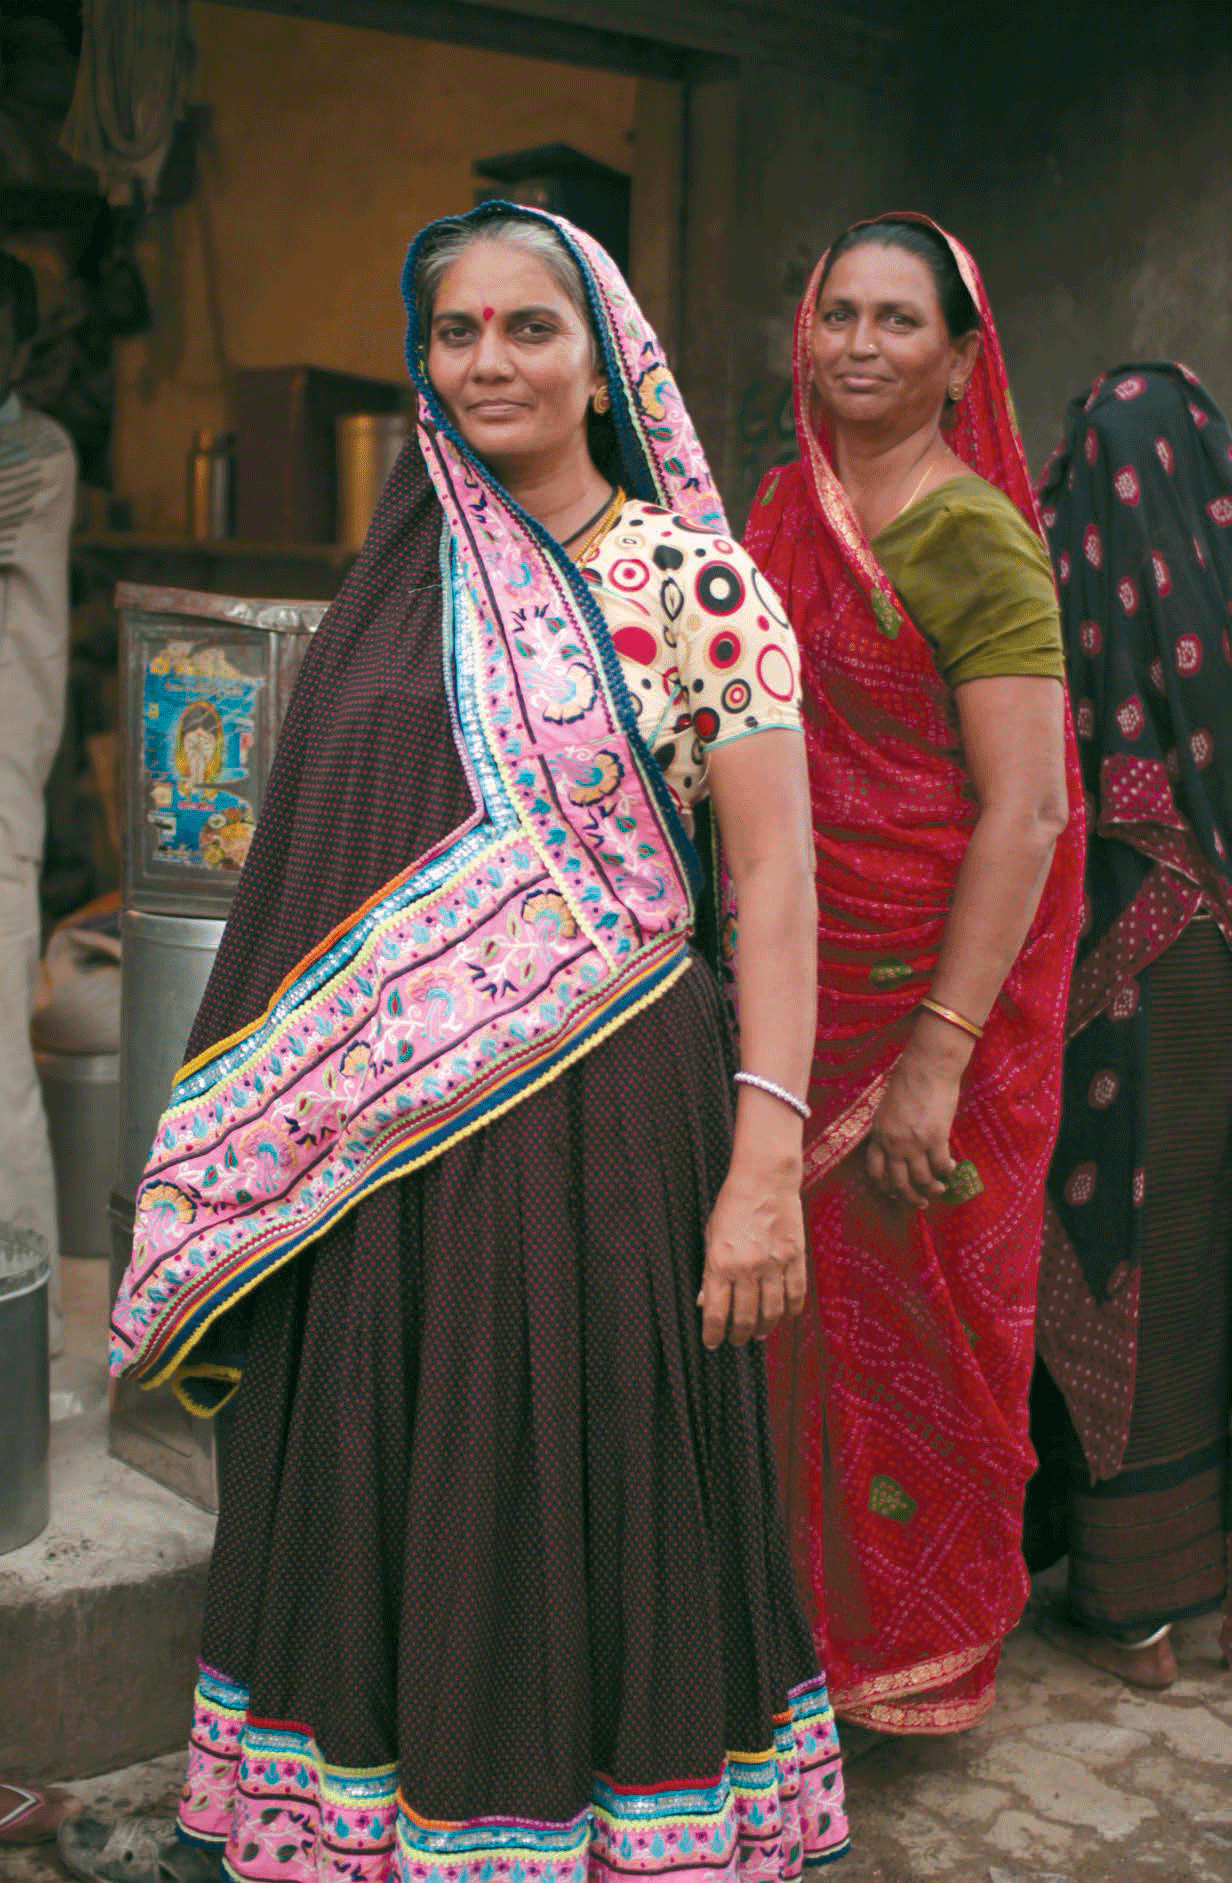 Jimmi , the screen printed design imitating bandhani. It is worn by women between 50-60 years old from the Leva Patel community